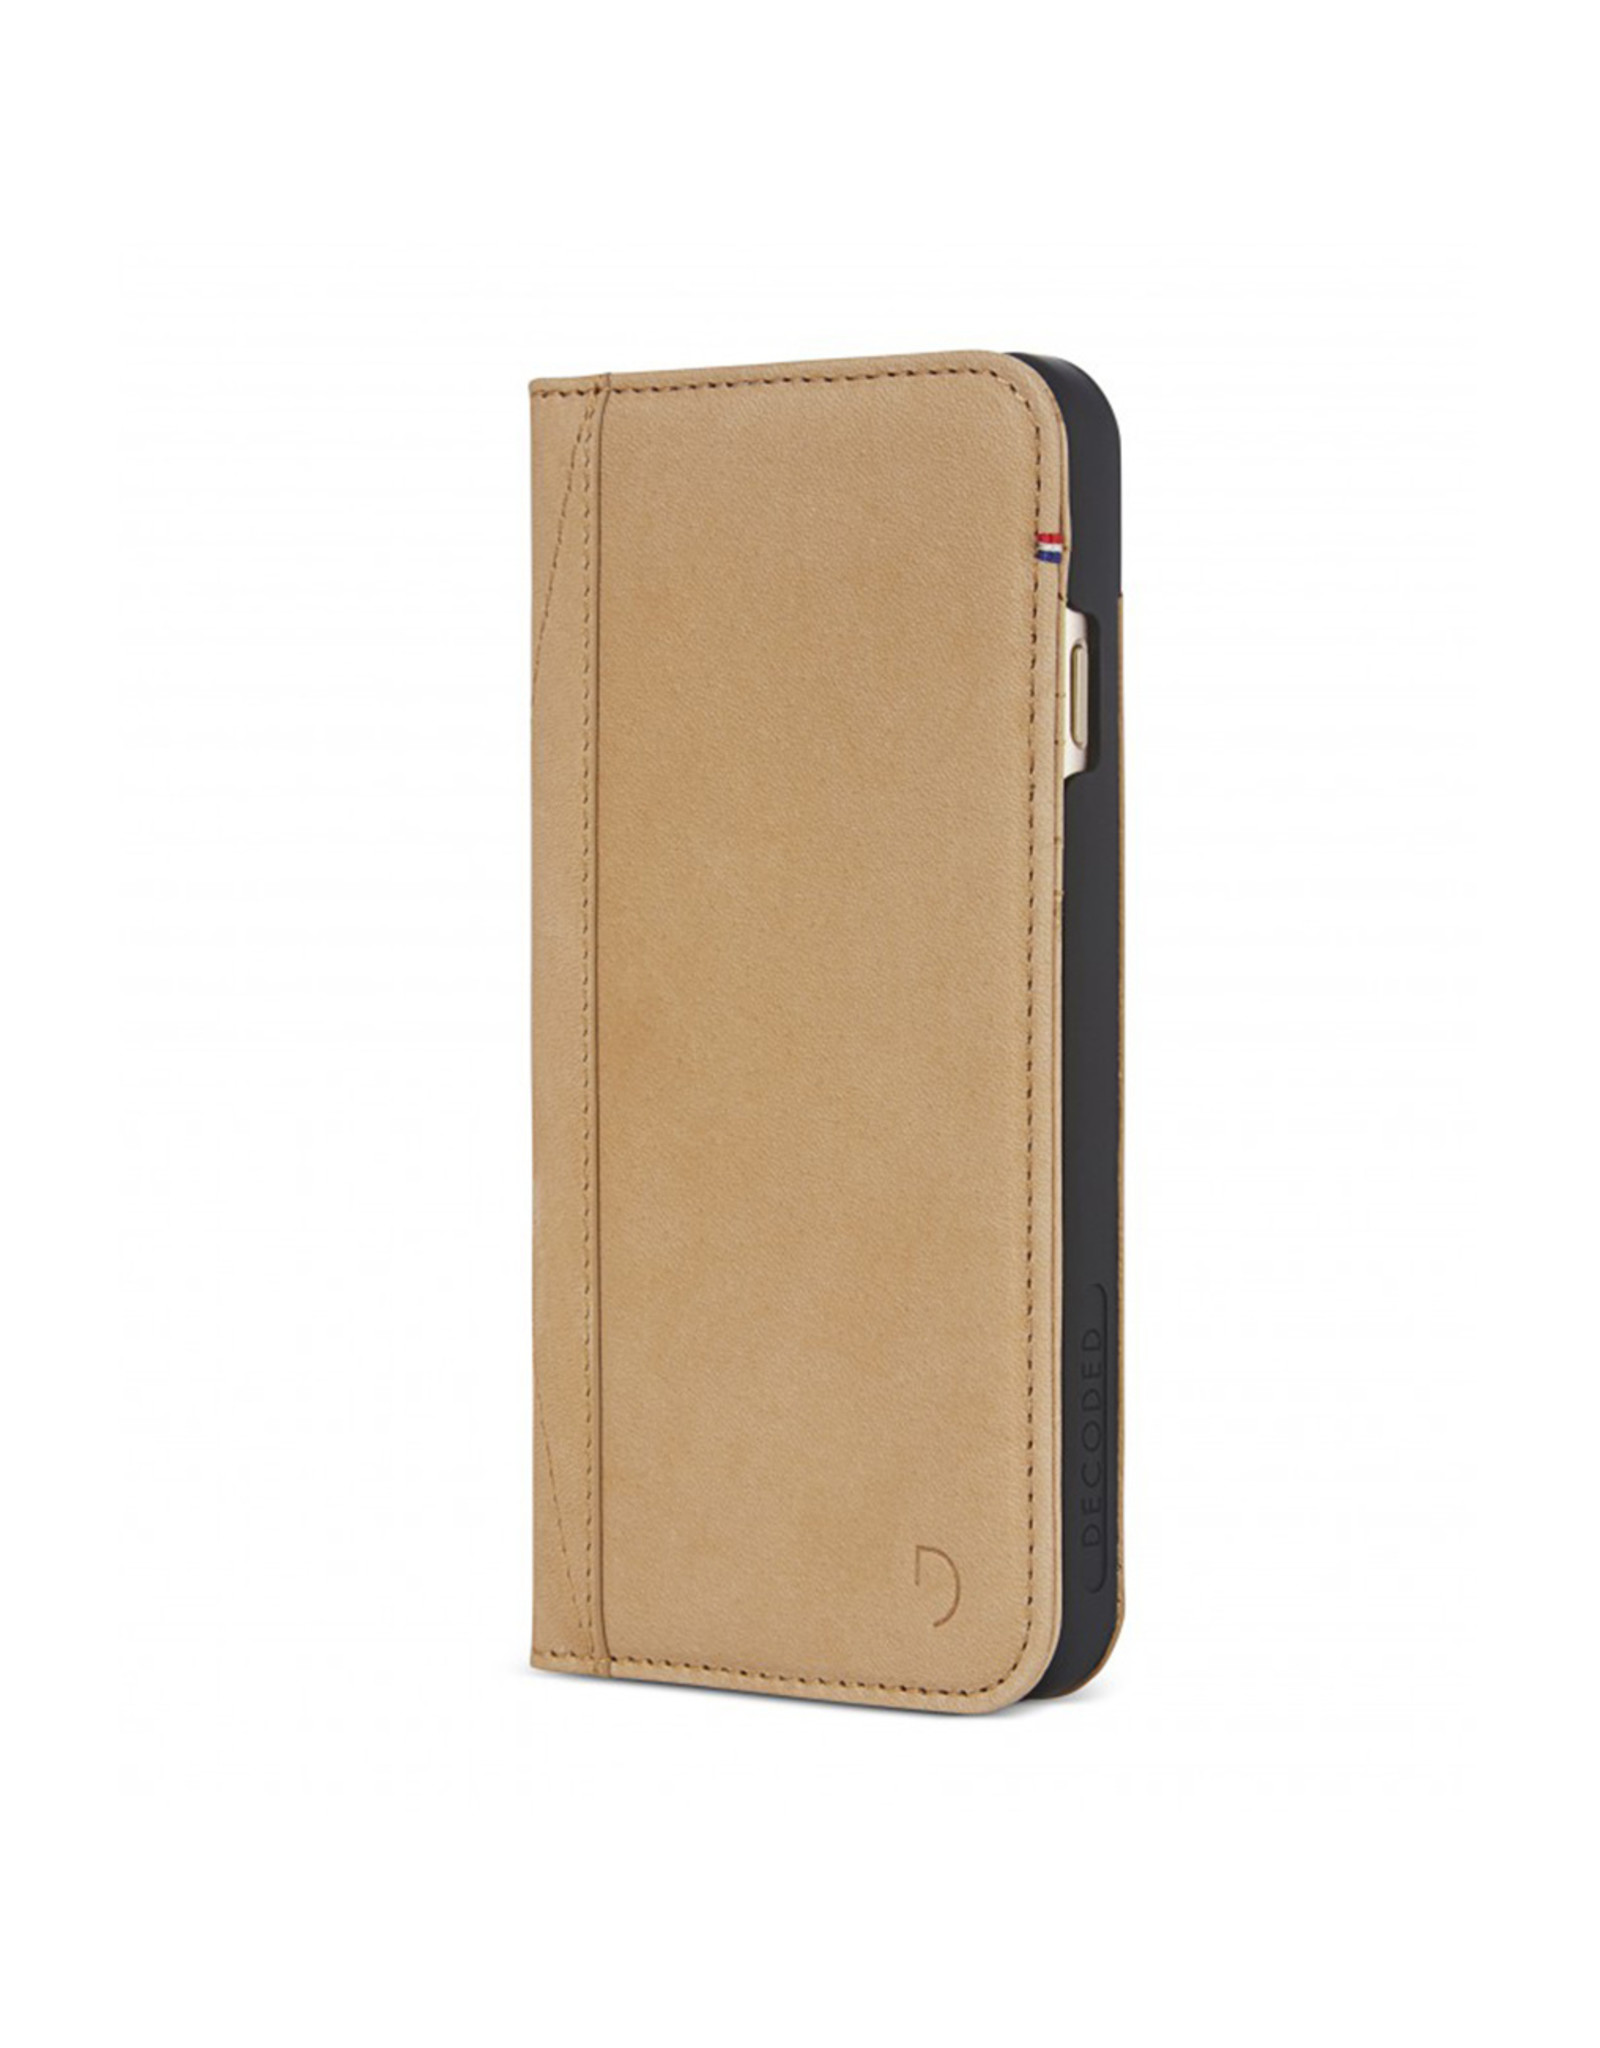 SO Decoded Leather Wallet Case for iP8/7/6s/6  Sahara DC-DA6IPO7CW3SA